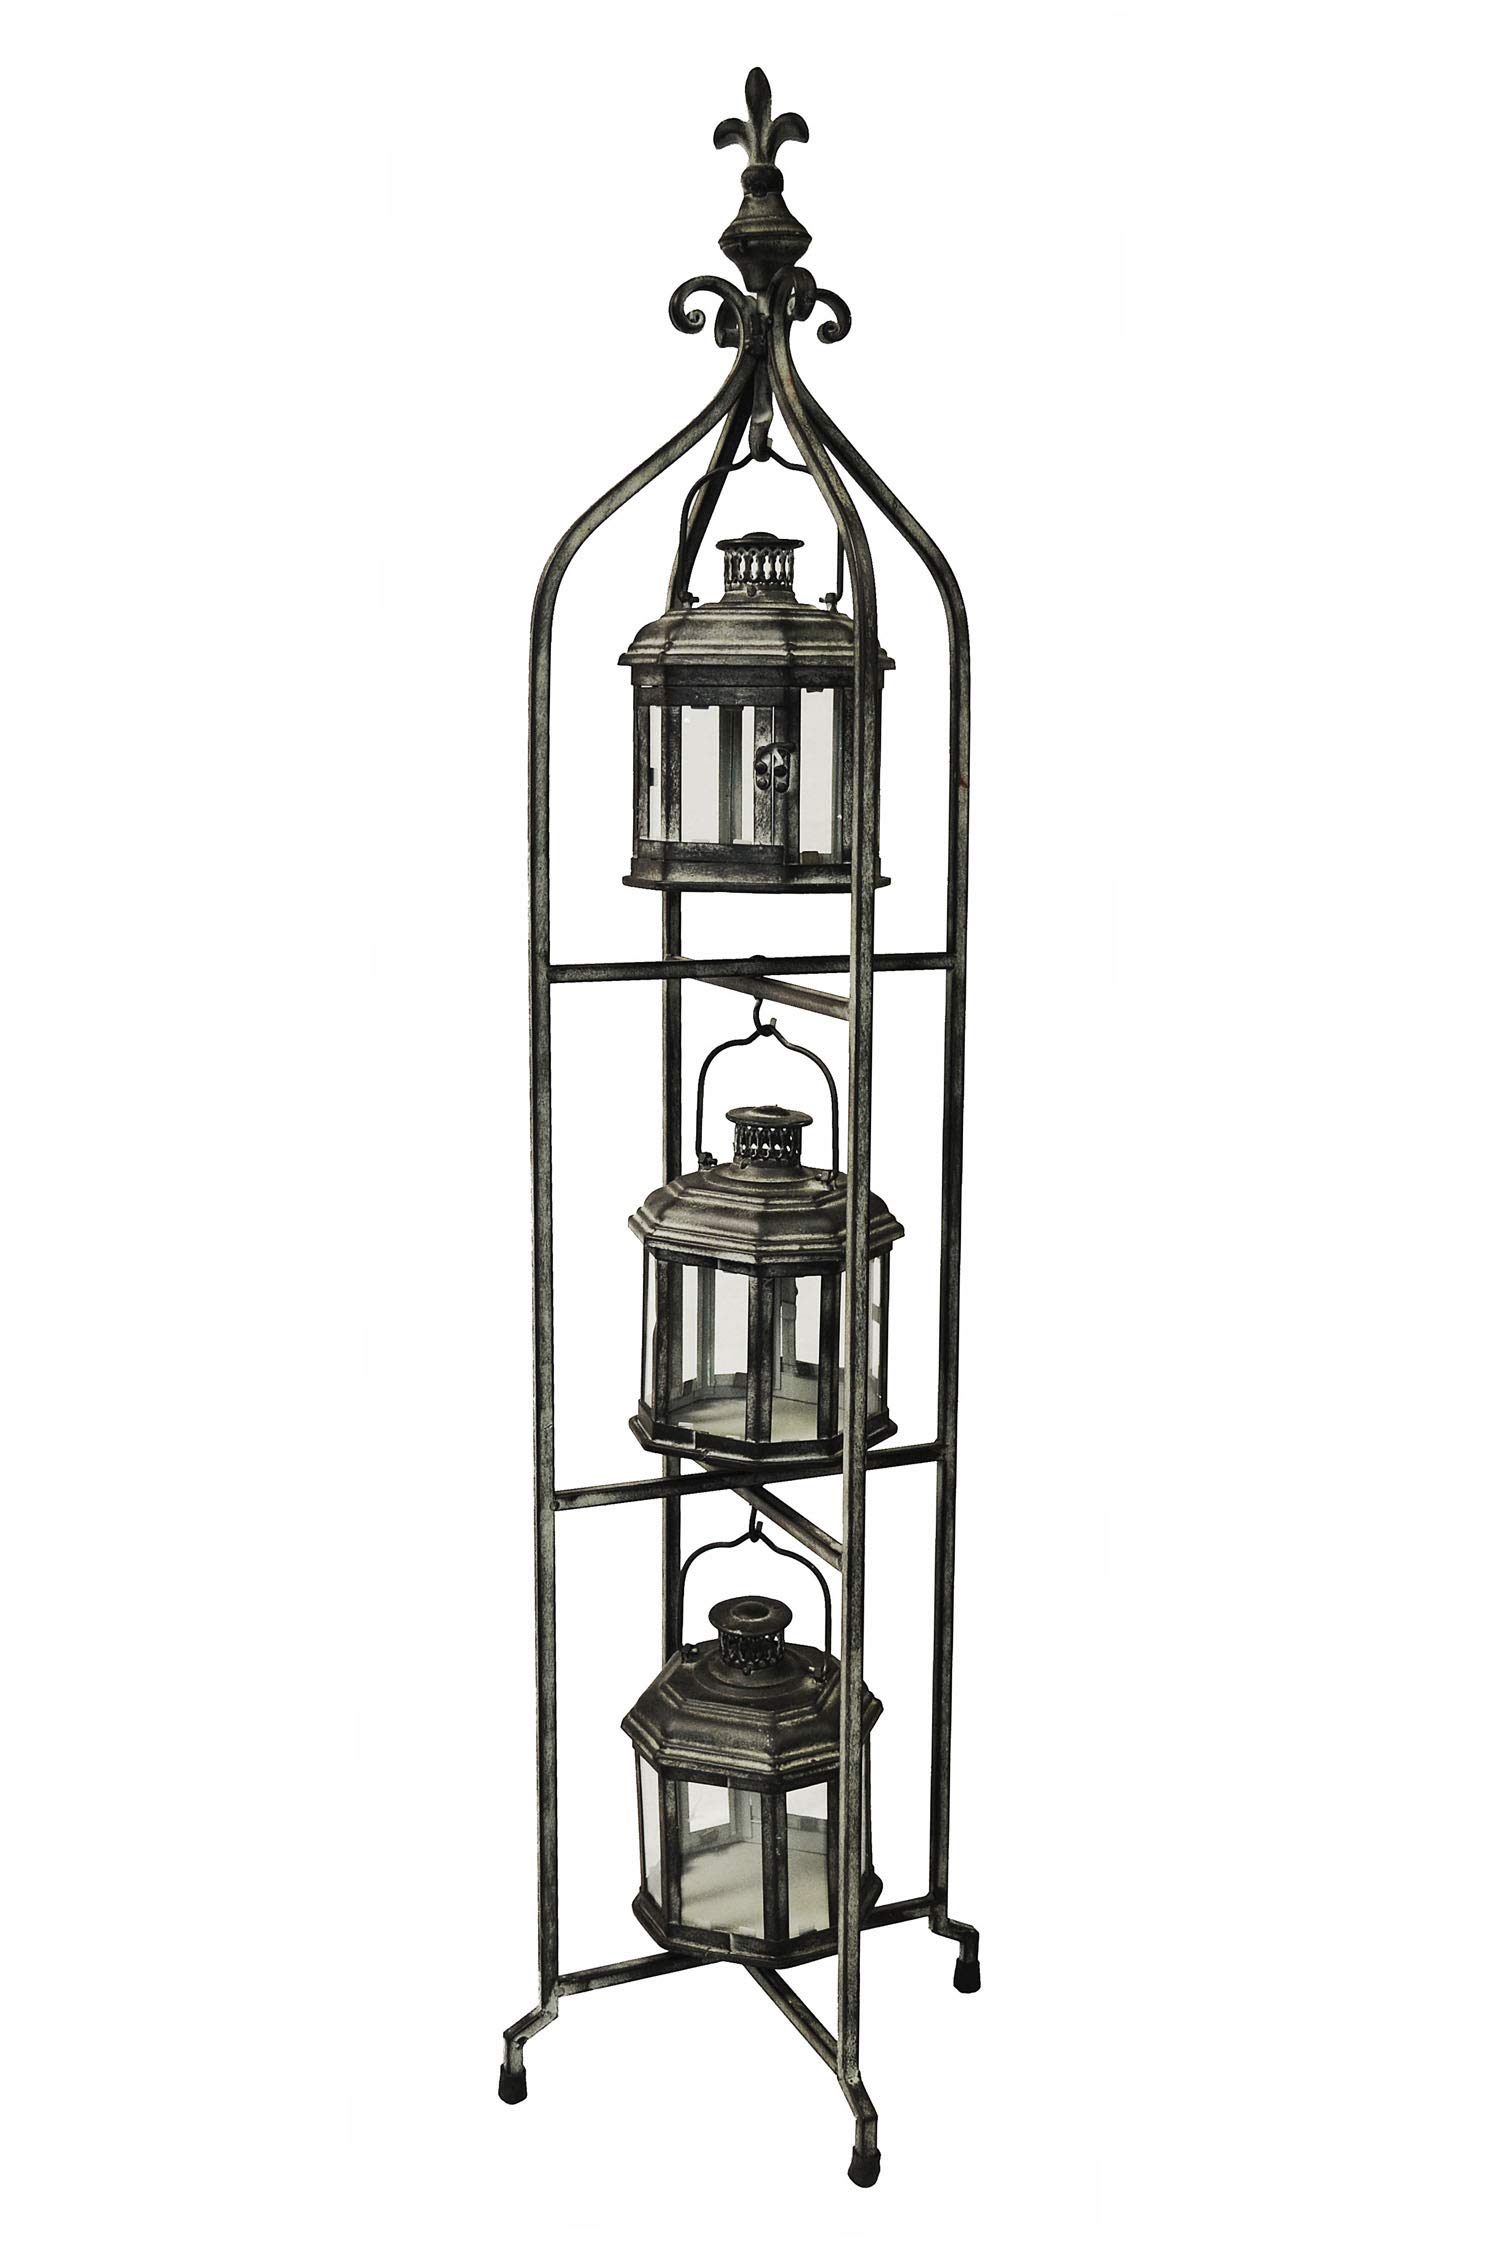 PierSurplus Metal Candle Lanterns with Stand - Three-Tier Lantern Stand for Yard Product SKU: CL221880 by PierSurplus (Image #4)